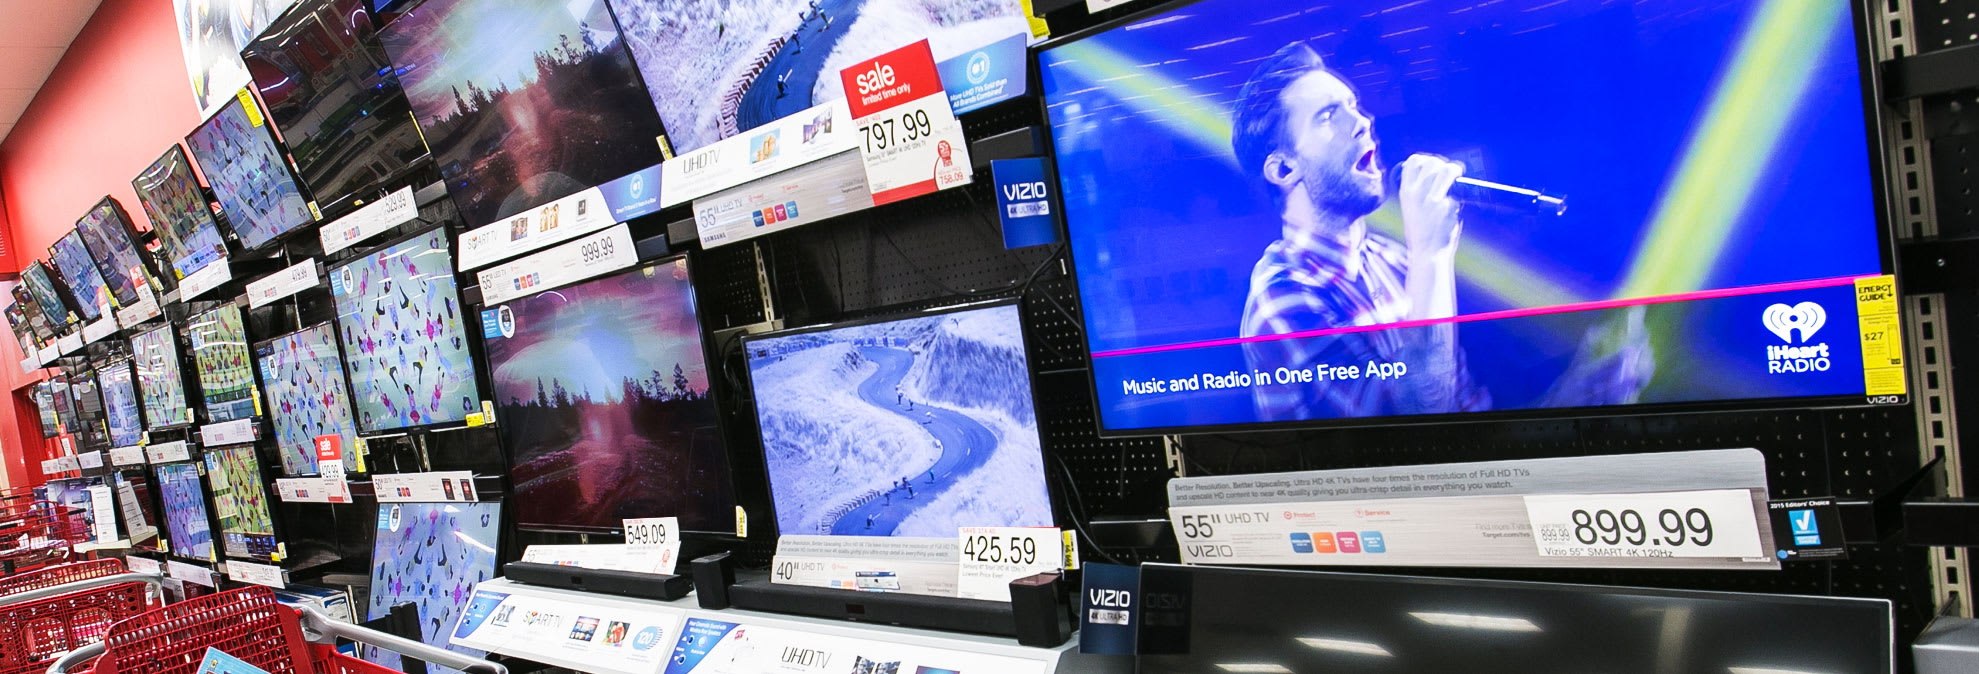 How To Shop Smarter In The Store For Your New Tv